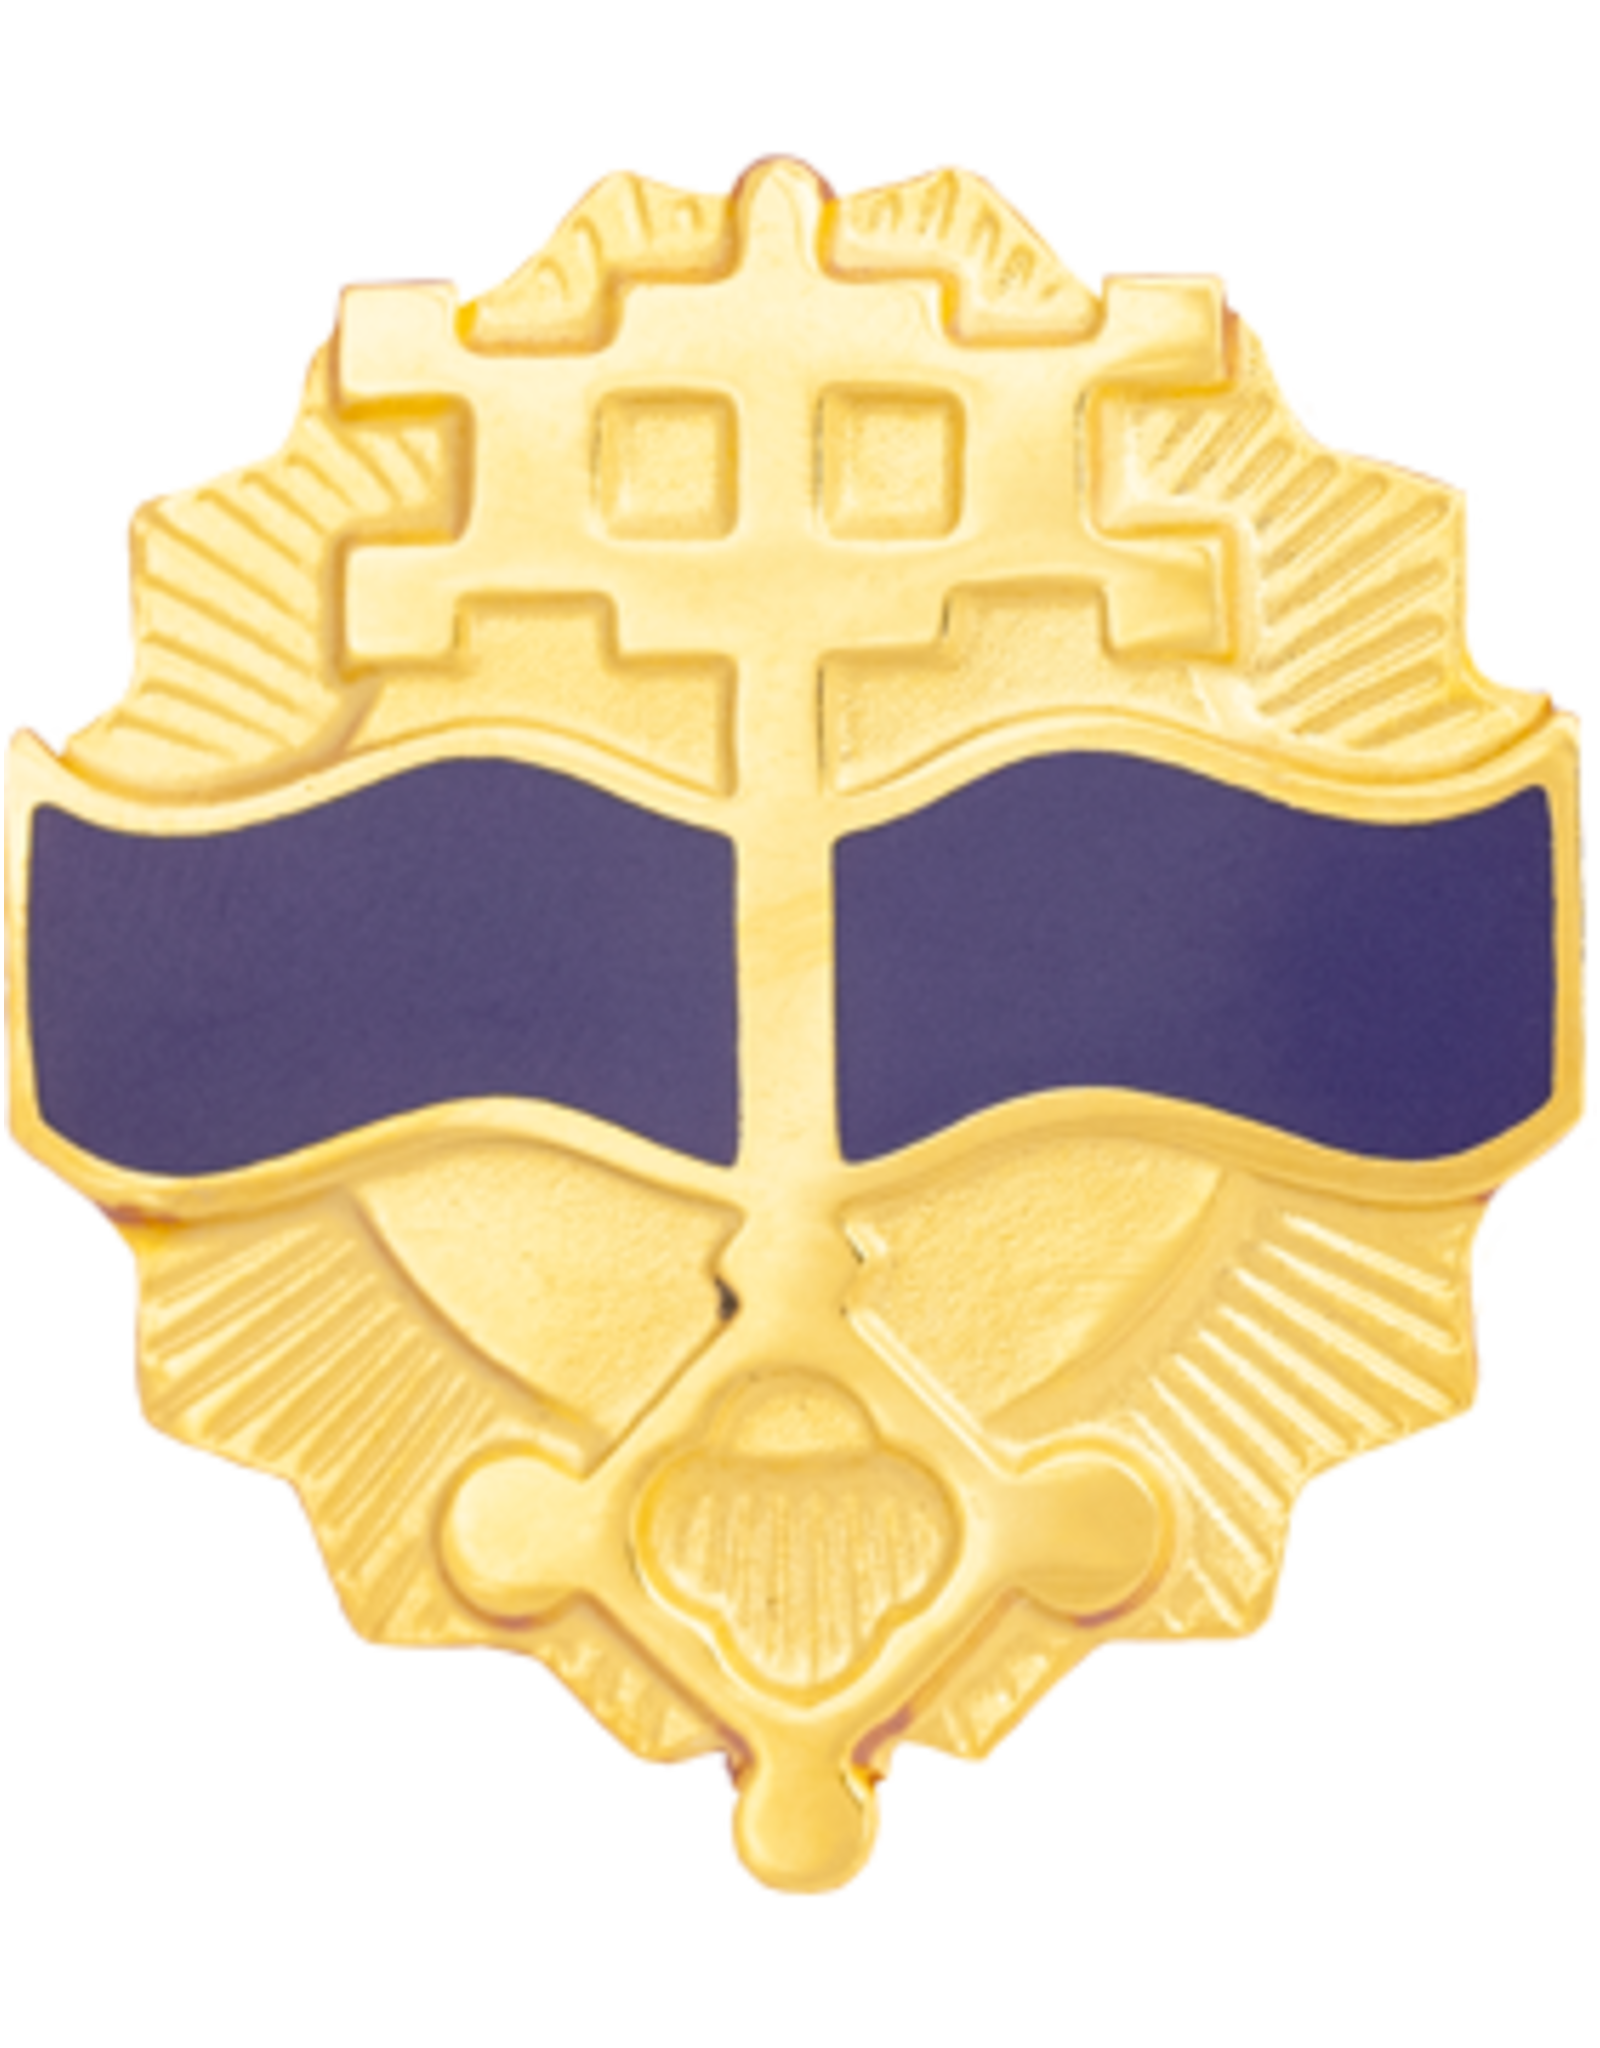 541st Maintanance Unit Crest